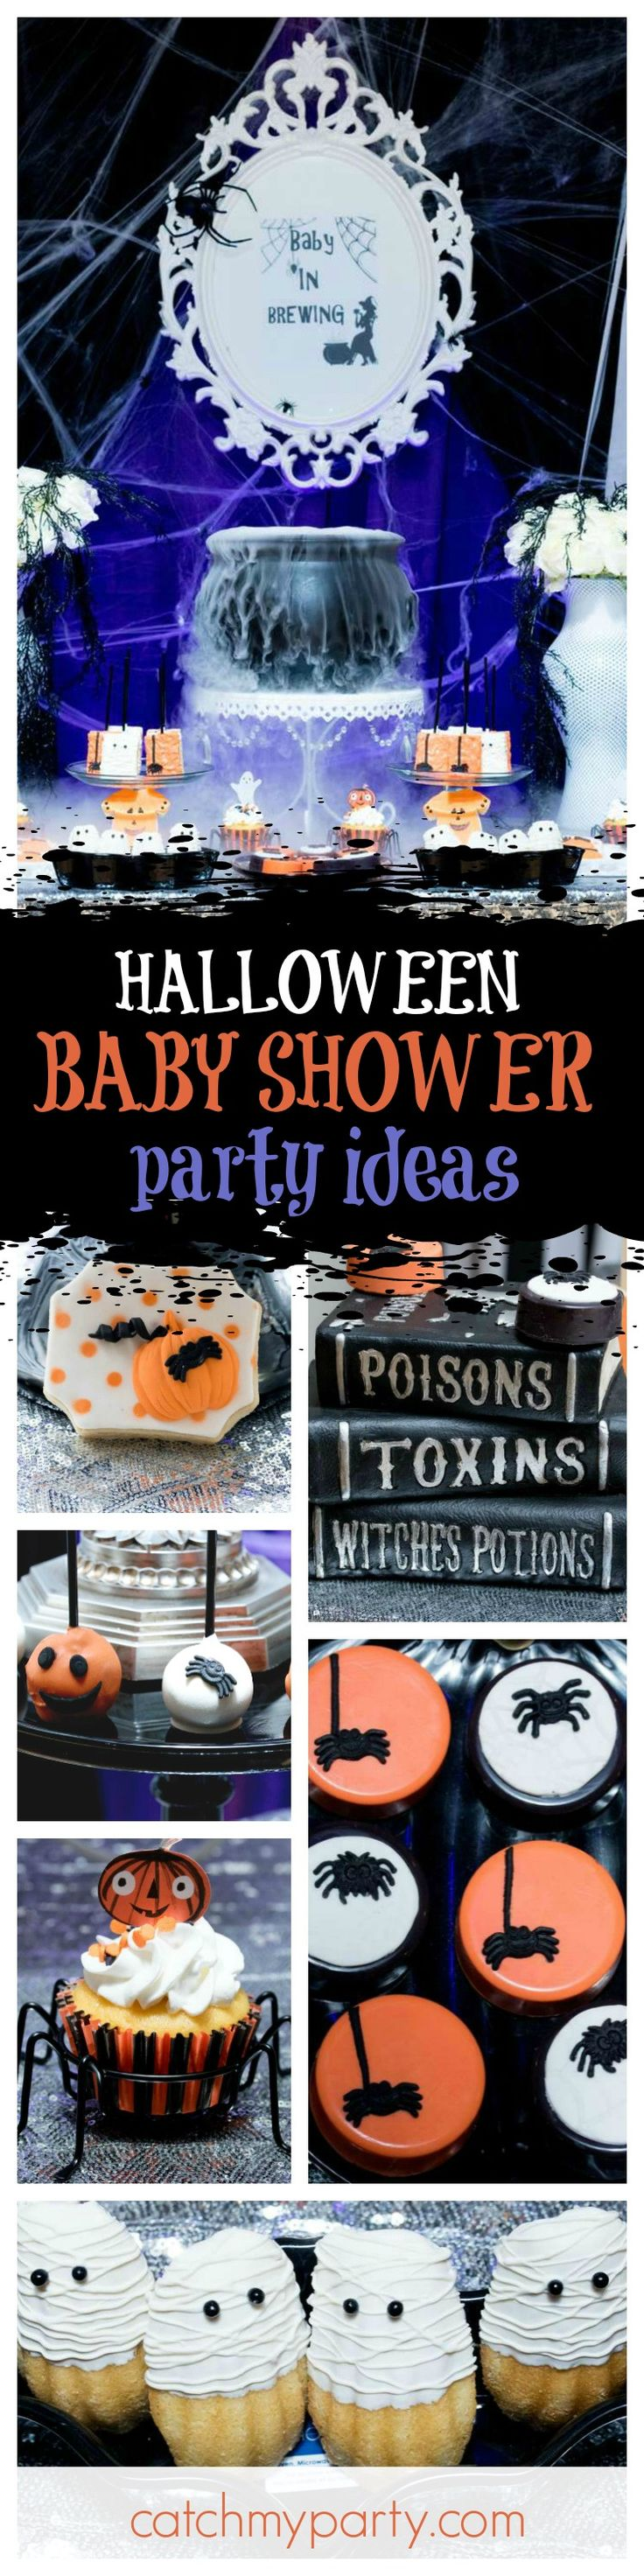 10+ images about Halloween on Pinterest | Haunted houses ...